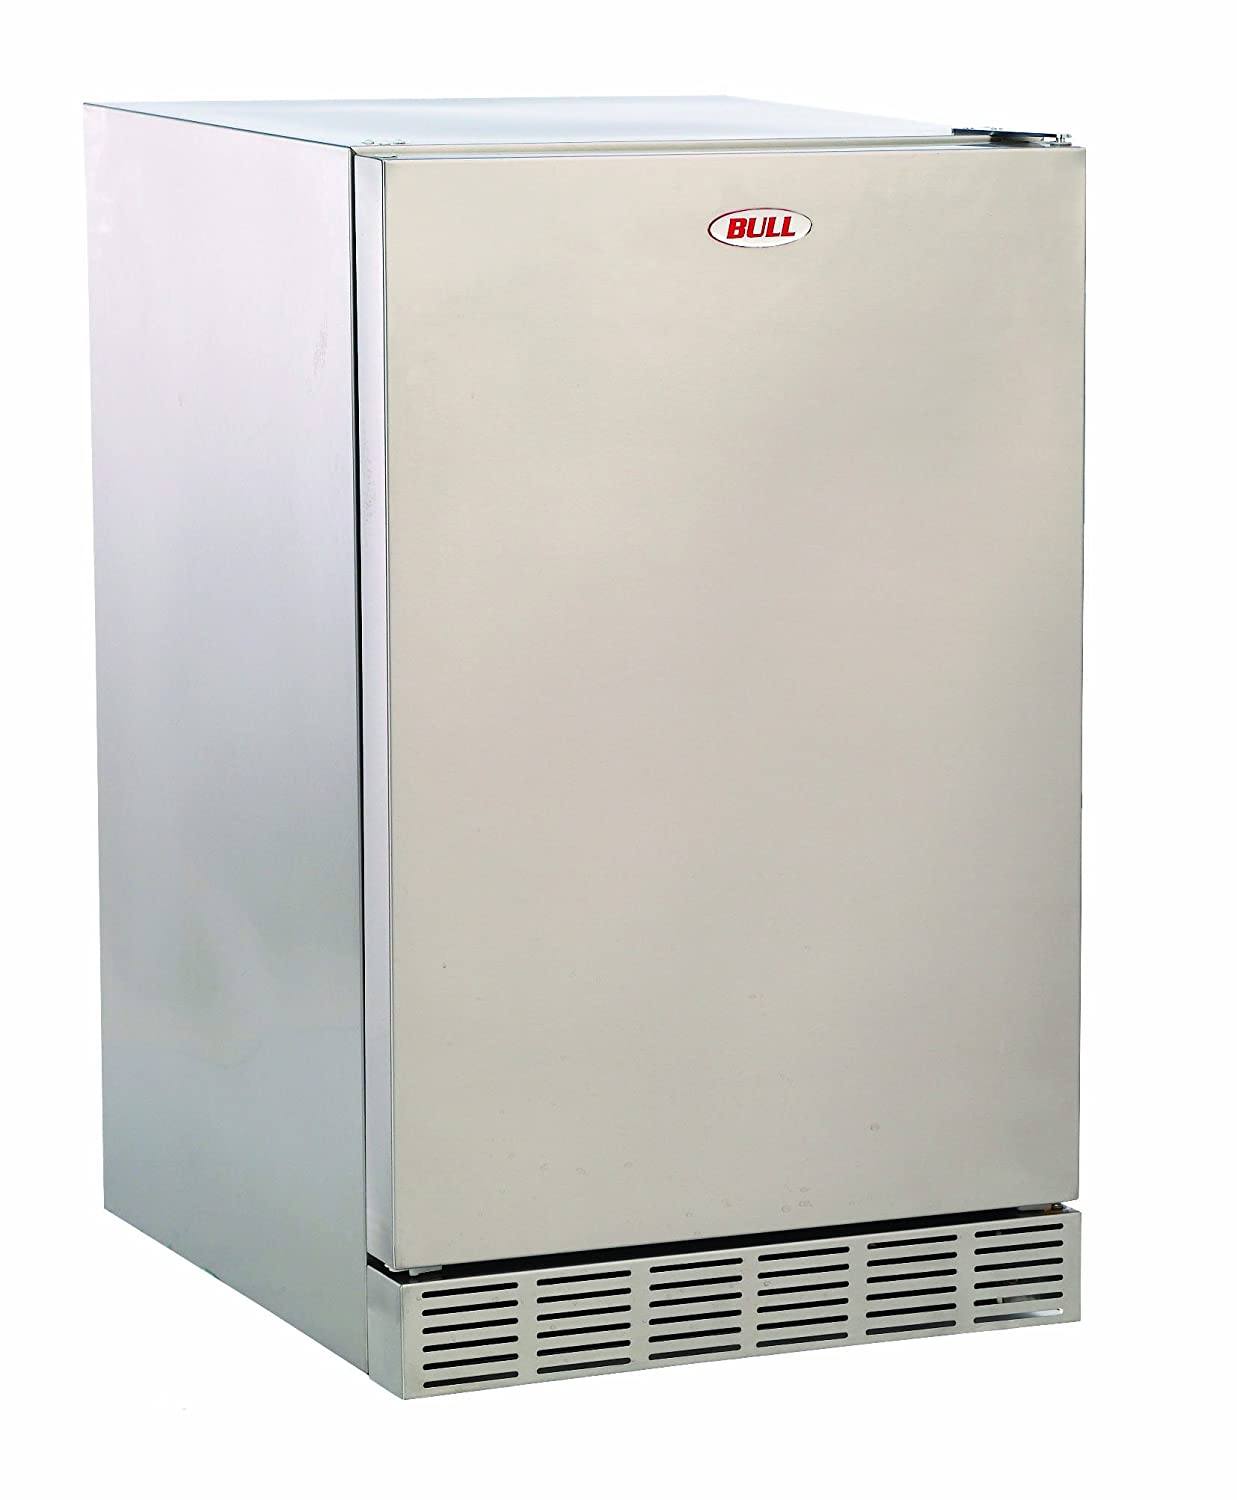 Refrigerator Outdoor Amazoncom Bull Outdoor Products 12001 Outdoor Rated